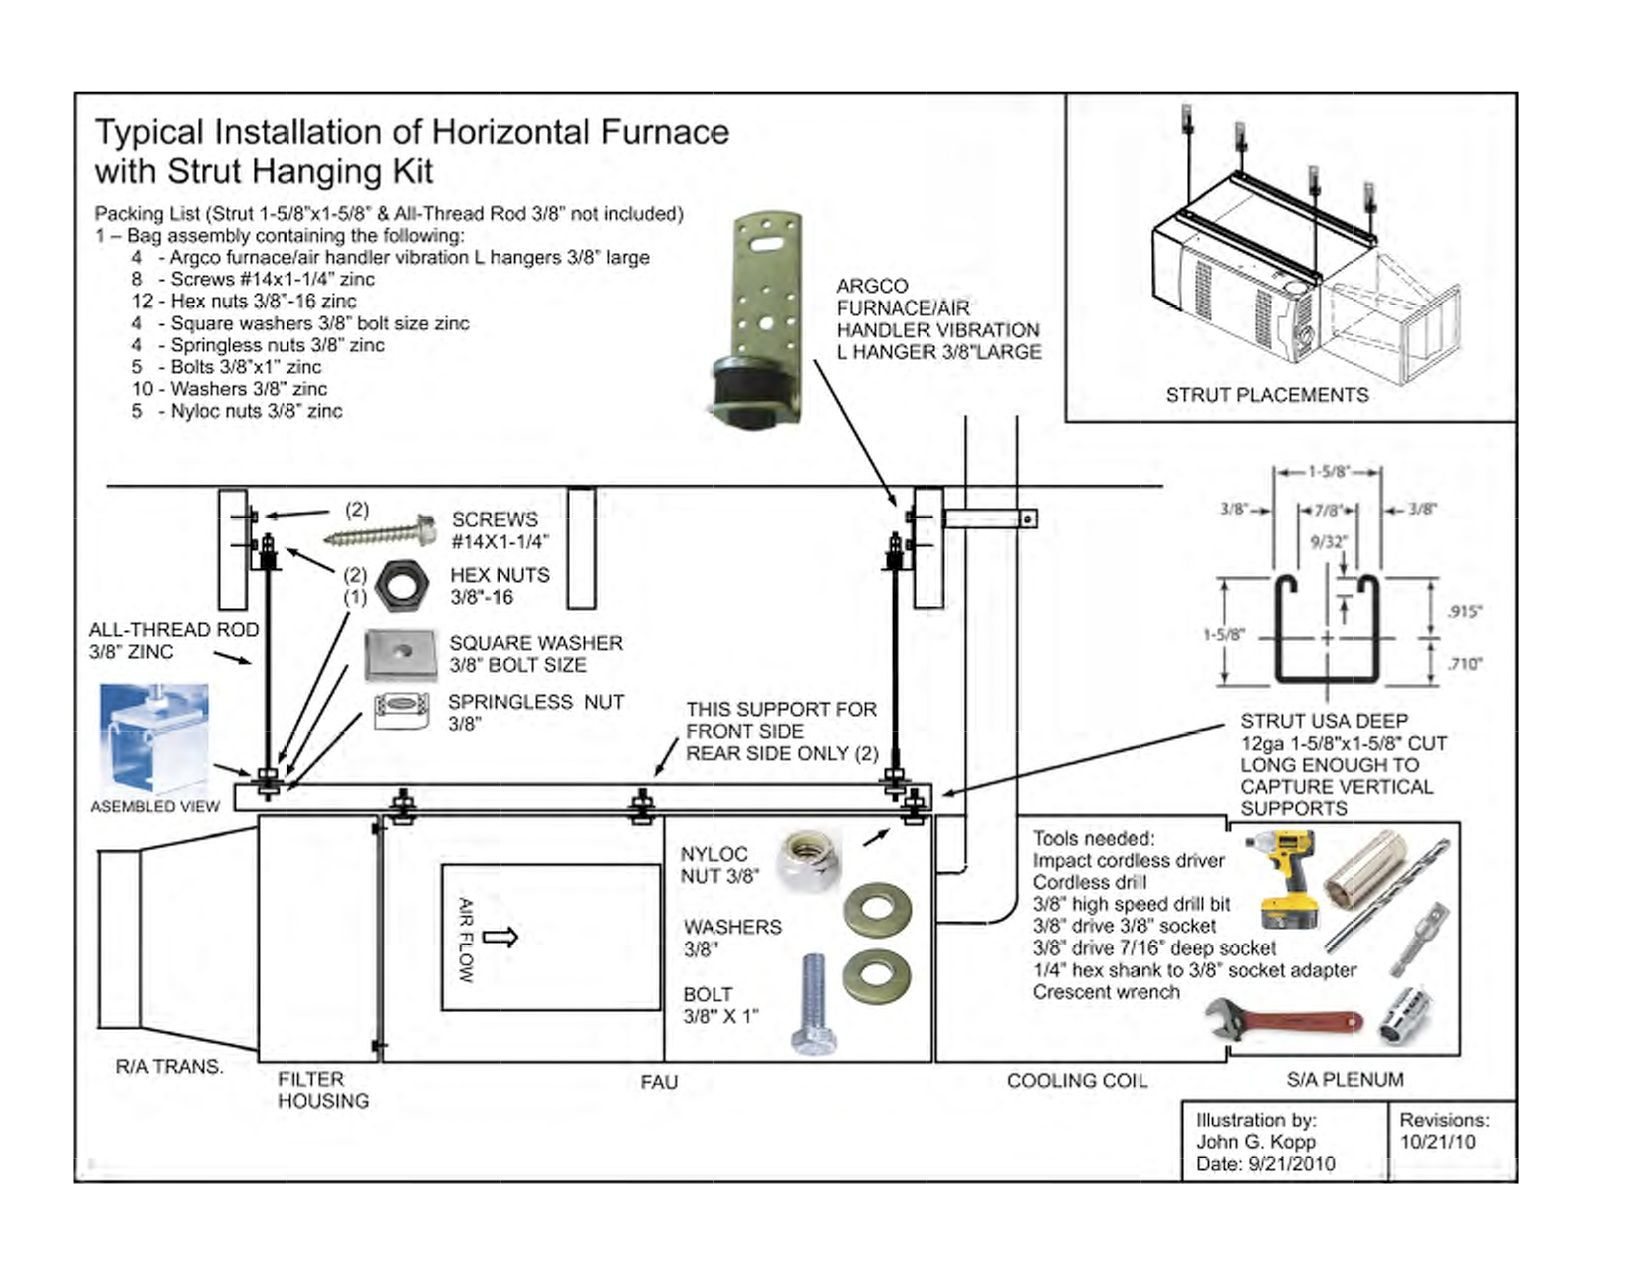 wiring diagram for lennox gas furnace with Trane Gas Furnace Ignition Control Wiring Diagram on Heat Exchanger Cleanout together with Carrier Mini Split System Wiring Diagram also Nordyne Gas Furnace Wiring Diagram Pdf as well Eb15b Coleman Electric Furnace Parts together with Arcoaire Heat Pump Wiring Diagram.